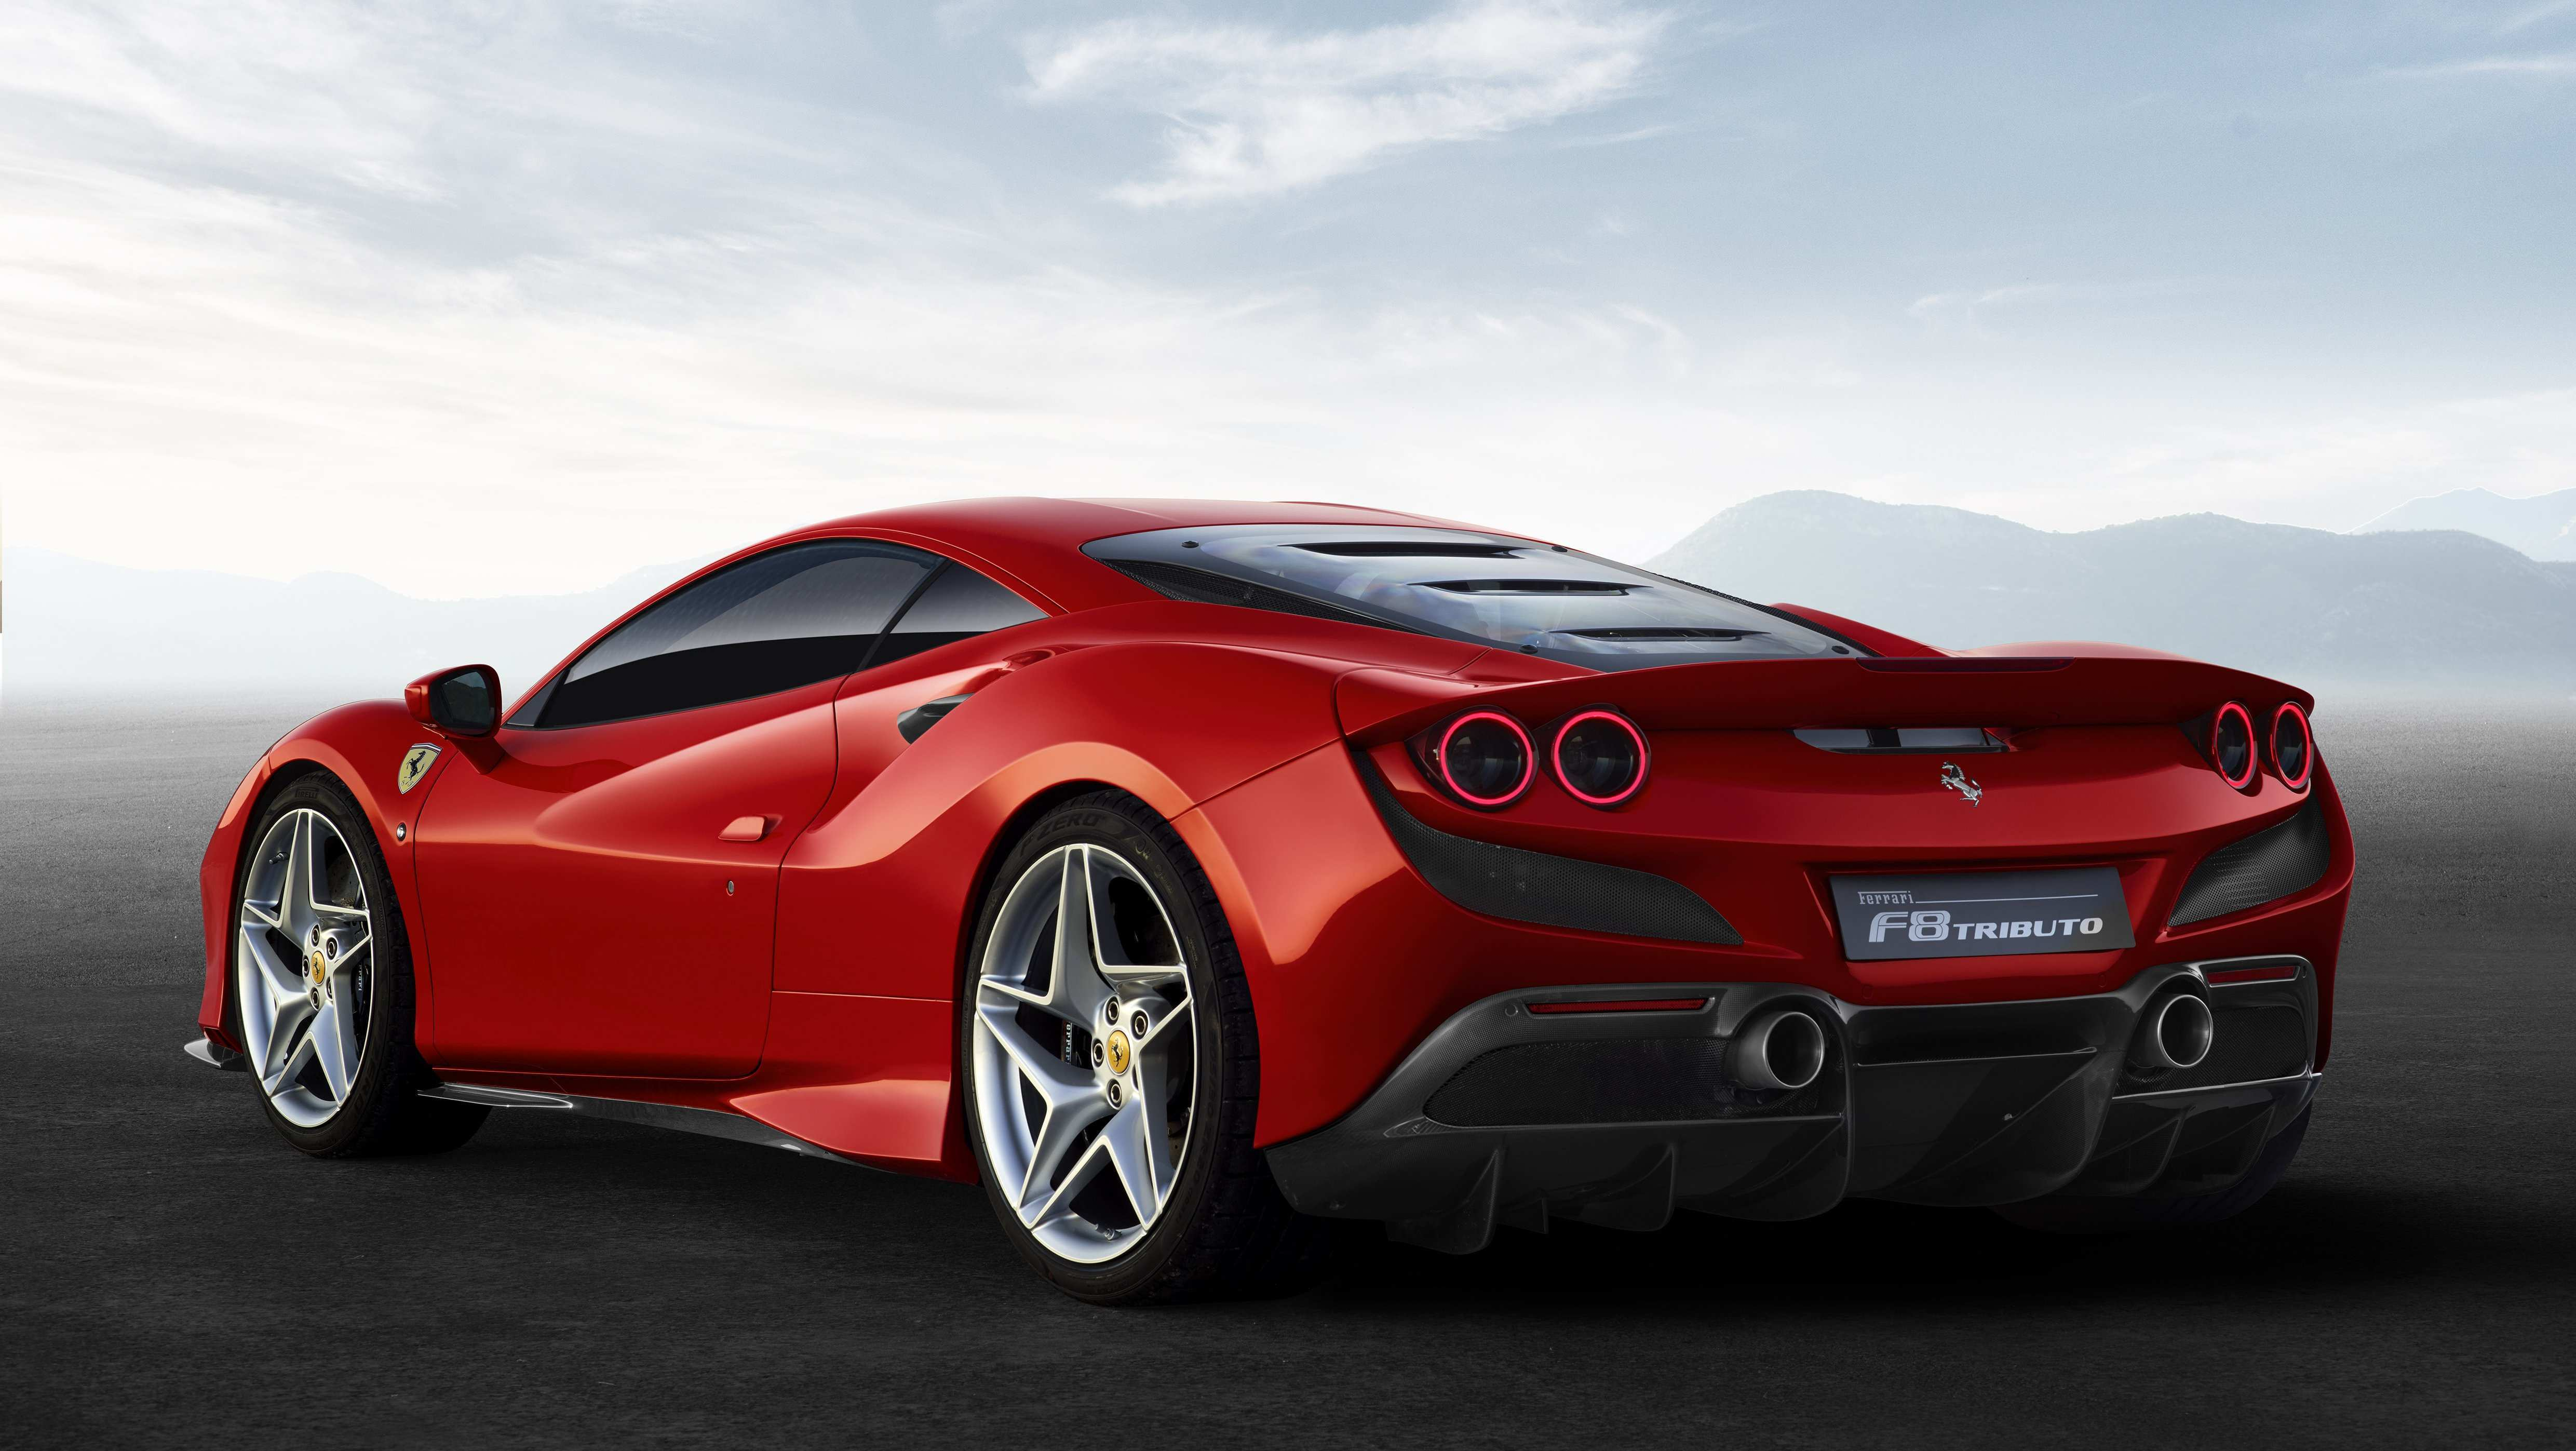 41 All New Ferrari 2020 Supercar Release